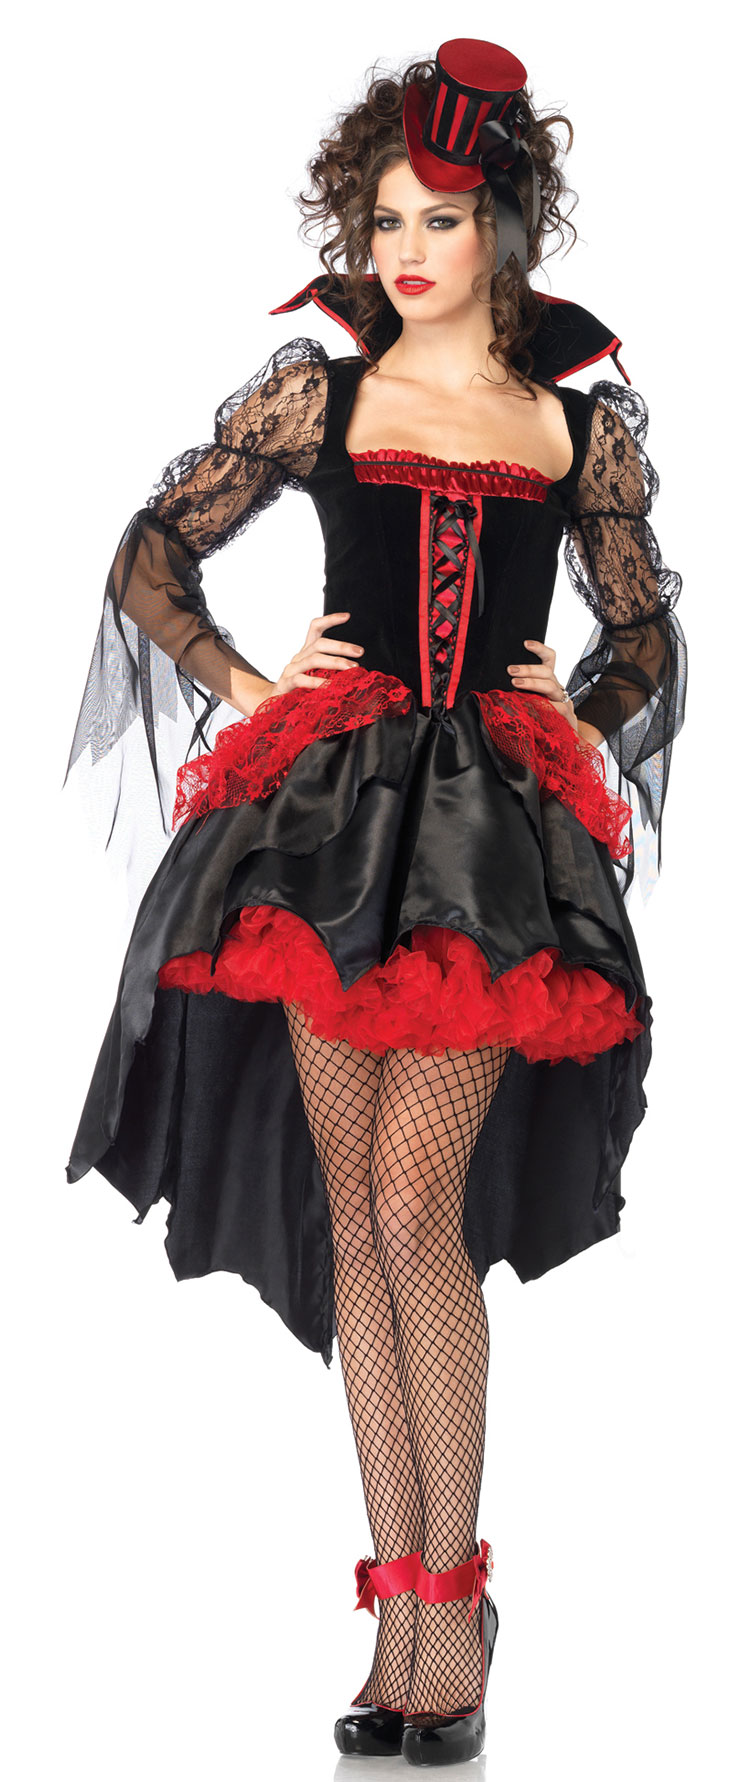 83841-Midnight-Mistress-Costume-large